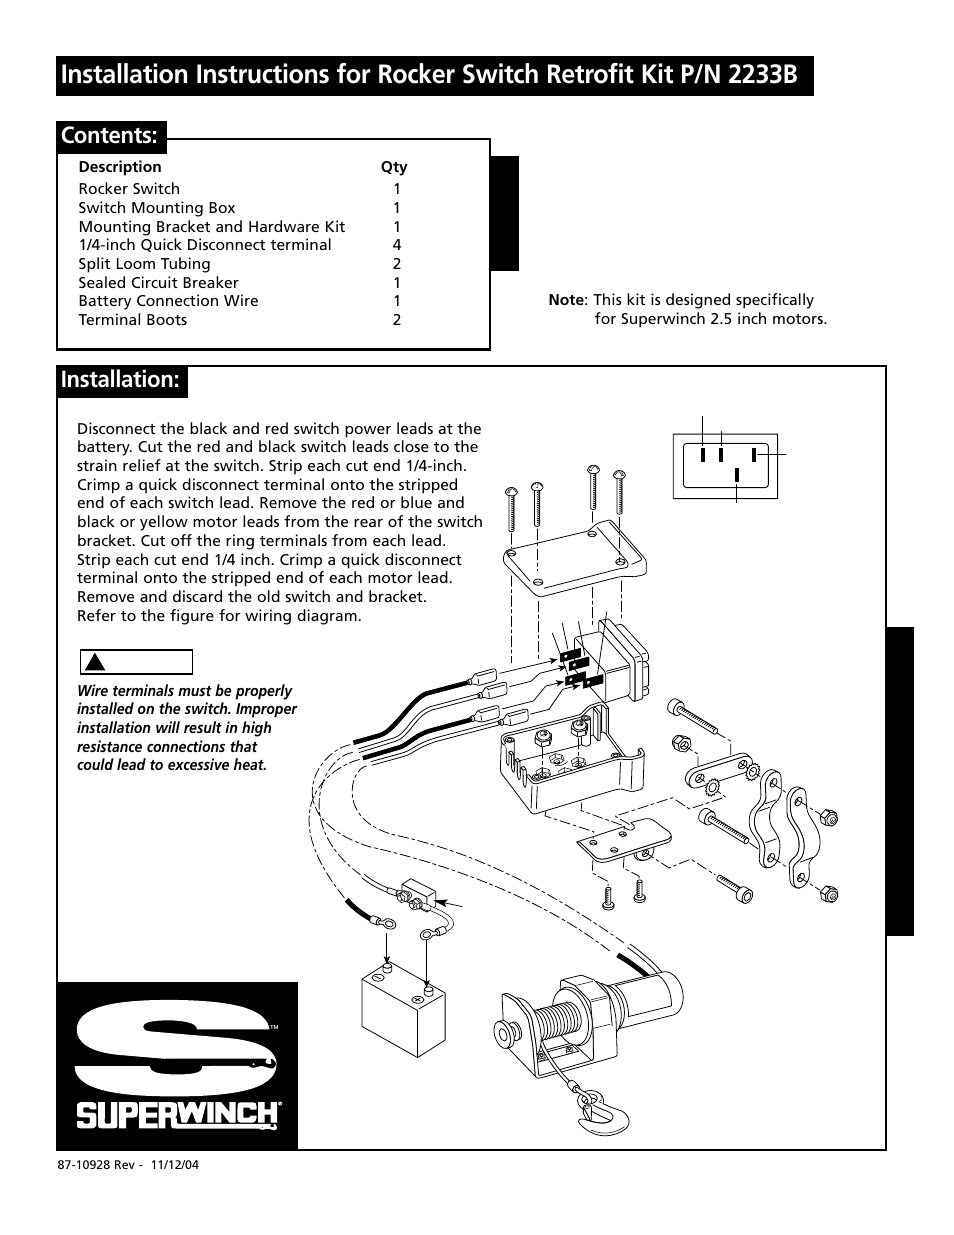 Wiring Diagram Superwinch S4000 Library Solenoid 4000 Rocker Switch 2233b Page1 User Manual